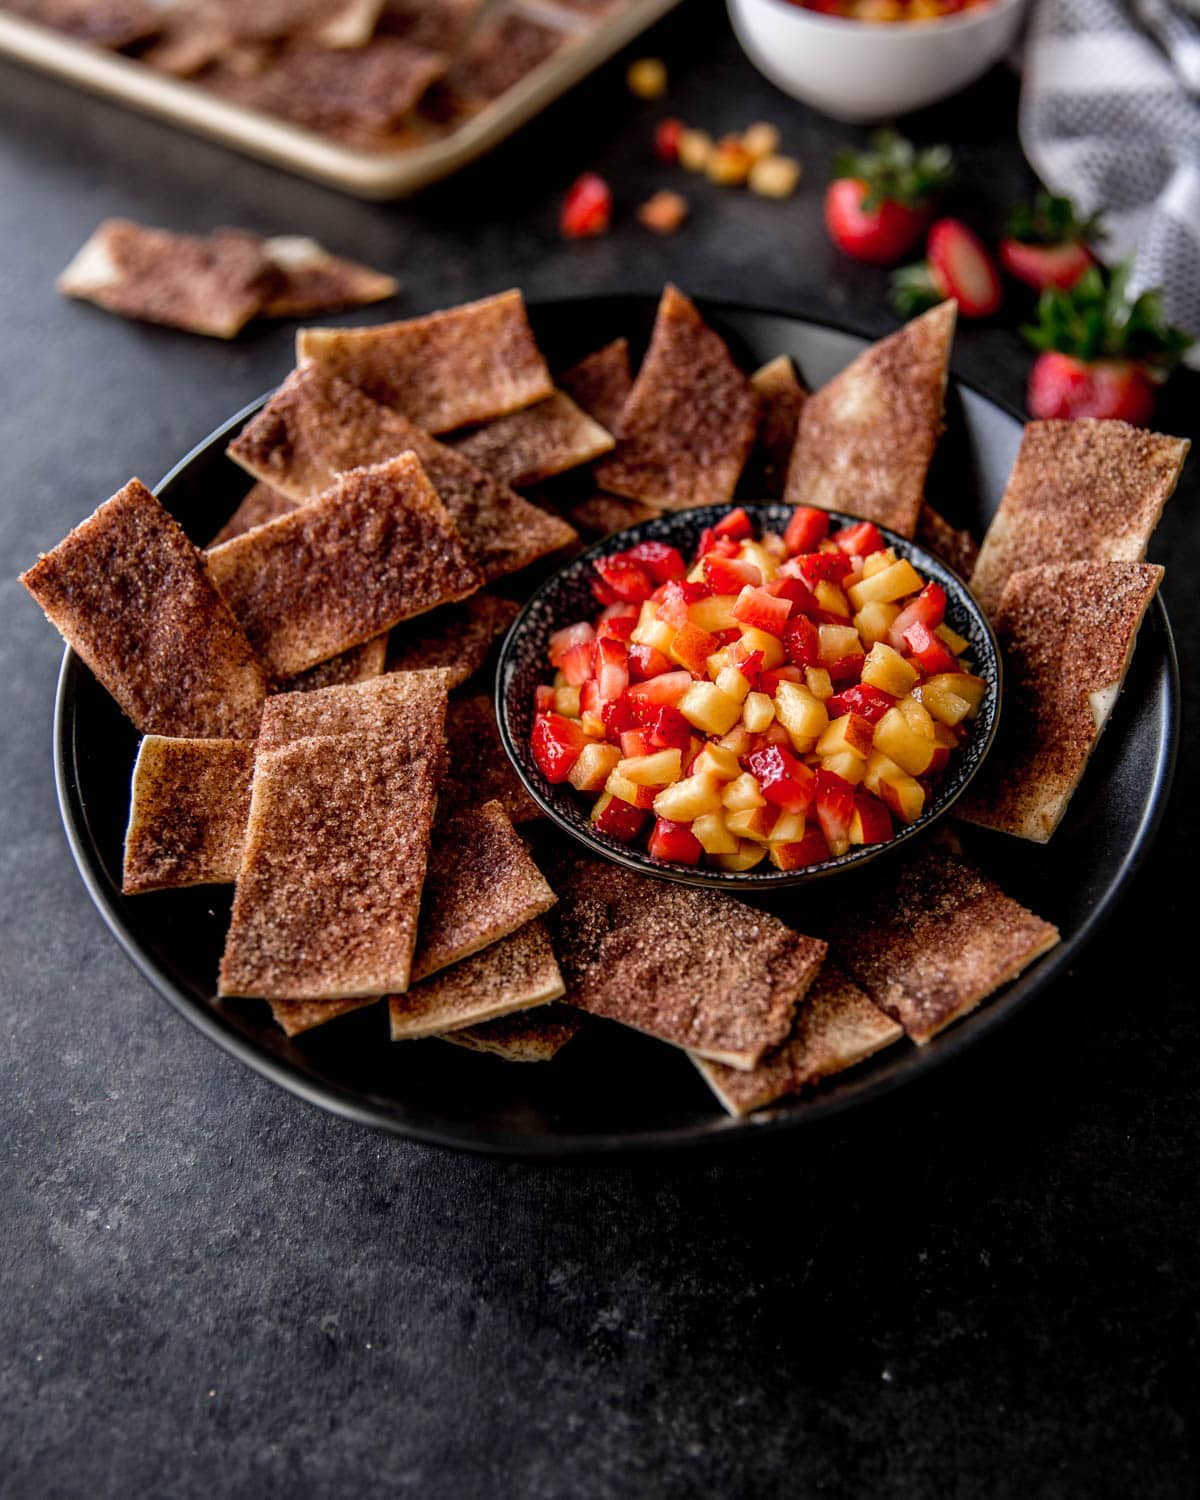 salsa and cinnamon chips in a black bowl